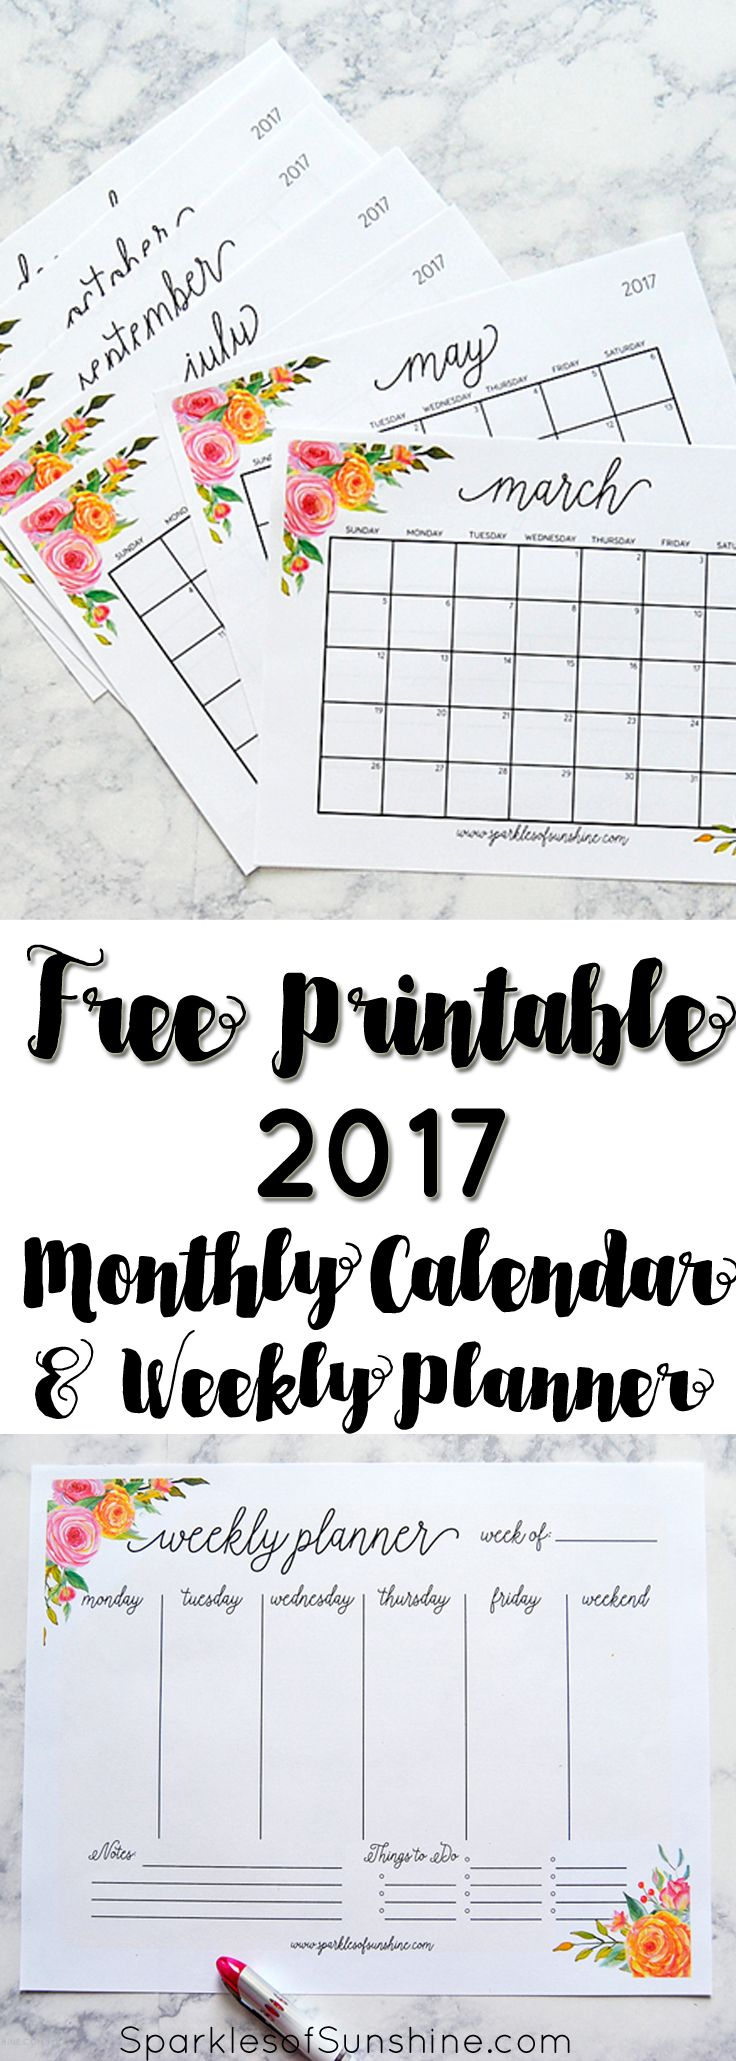 Weekly dinner meal planner template car interior design - Free Printable 2017 Monthly Calendar And Weekly Planner